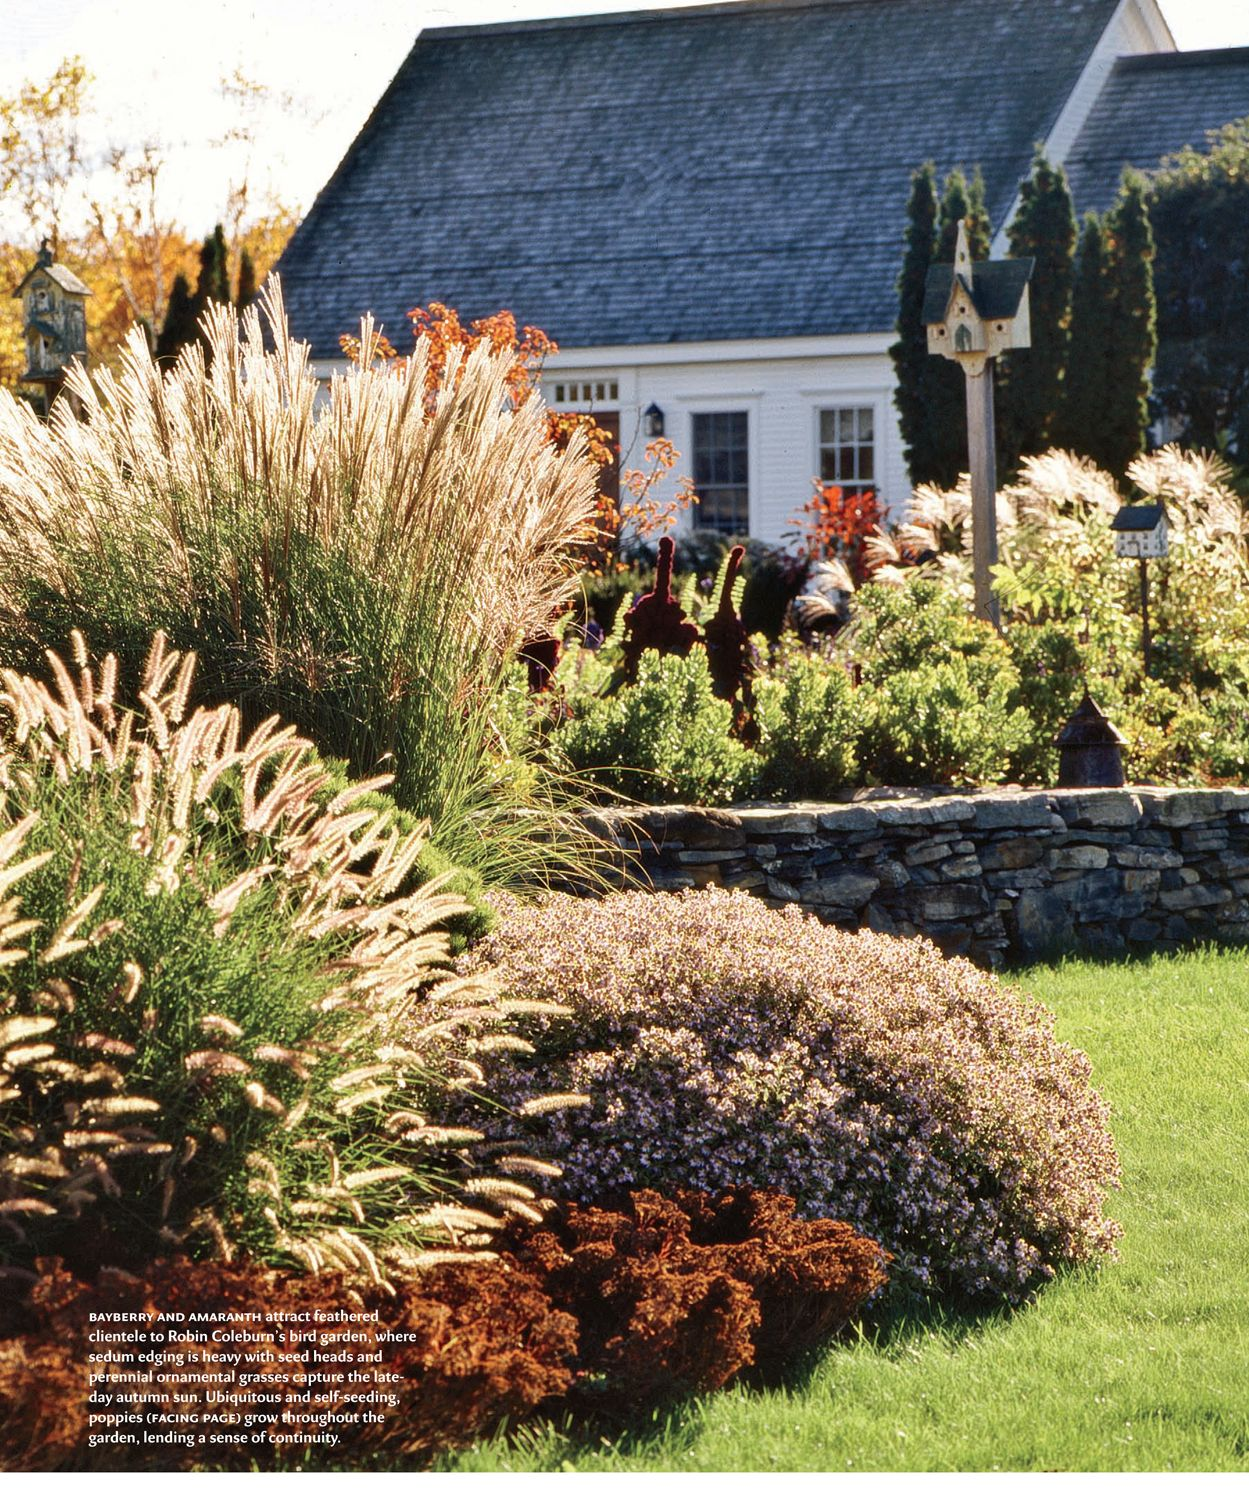 gorgeous front yard in charlotte vt using evergreen perennial grasses and shrubs design new england julyaugust 2011 issue